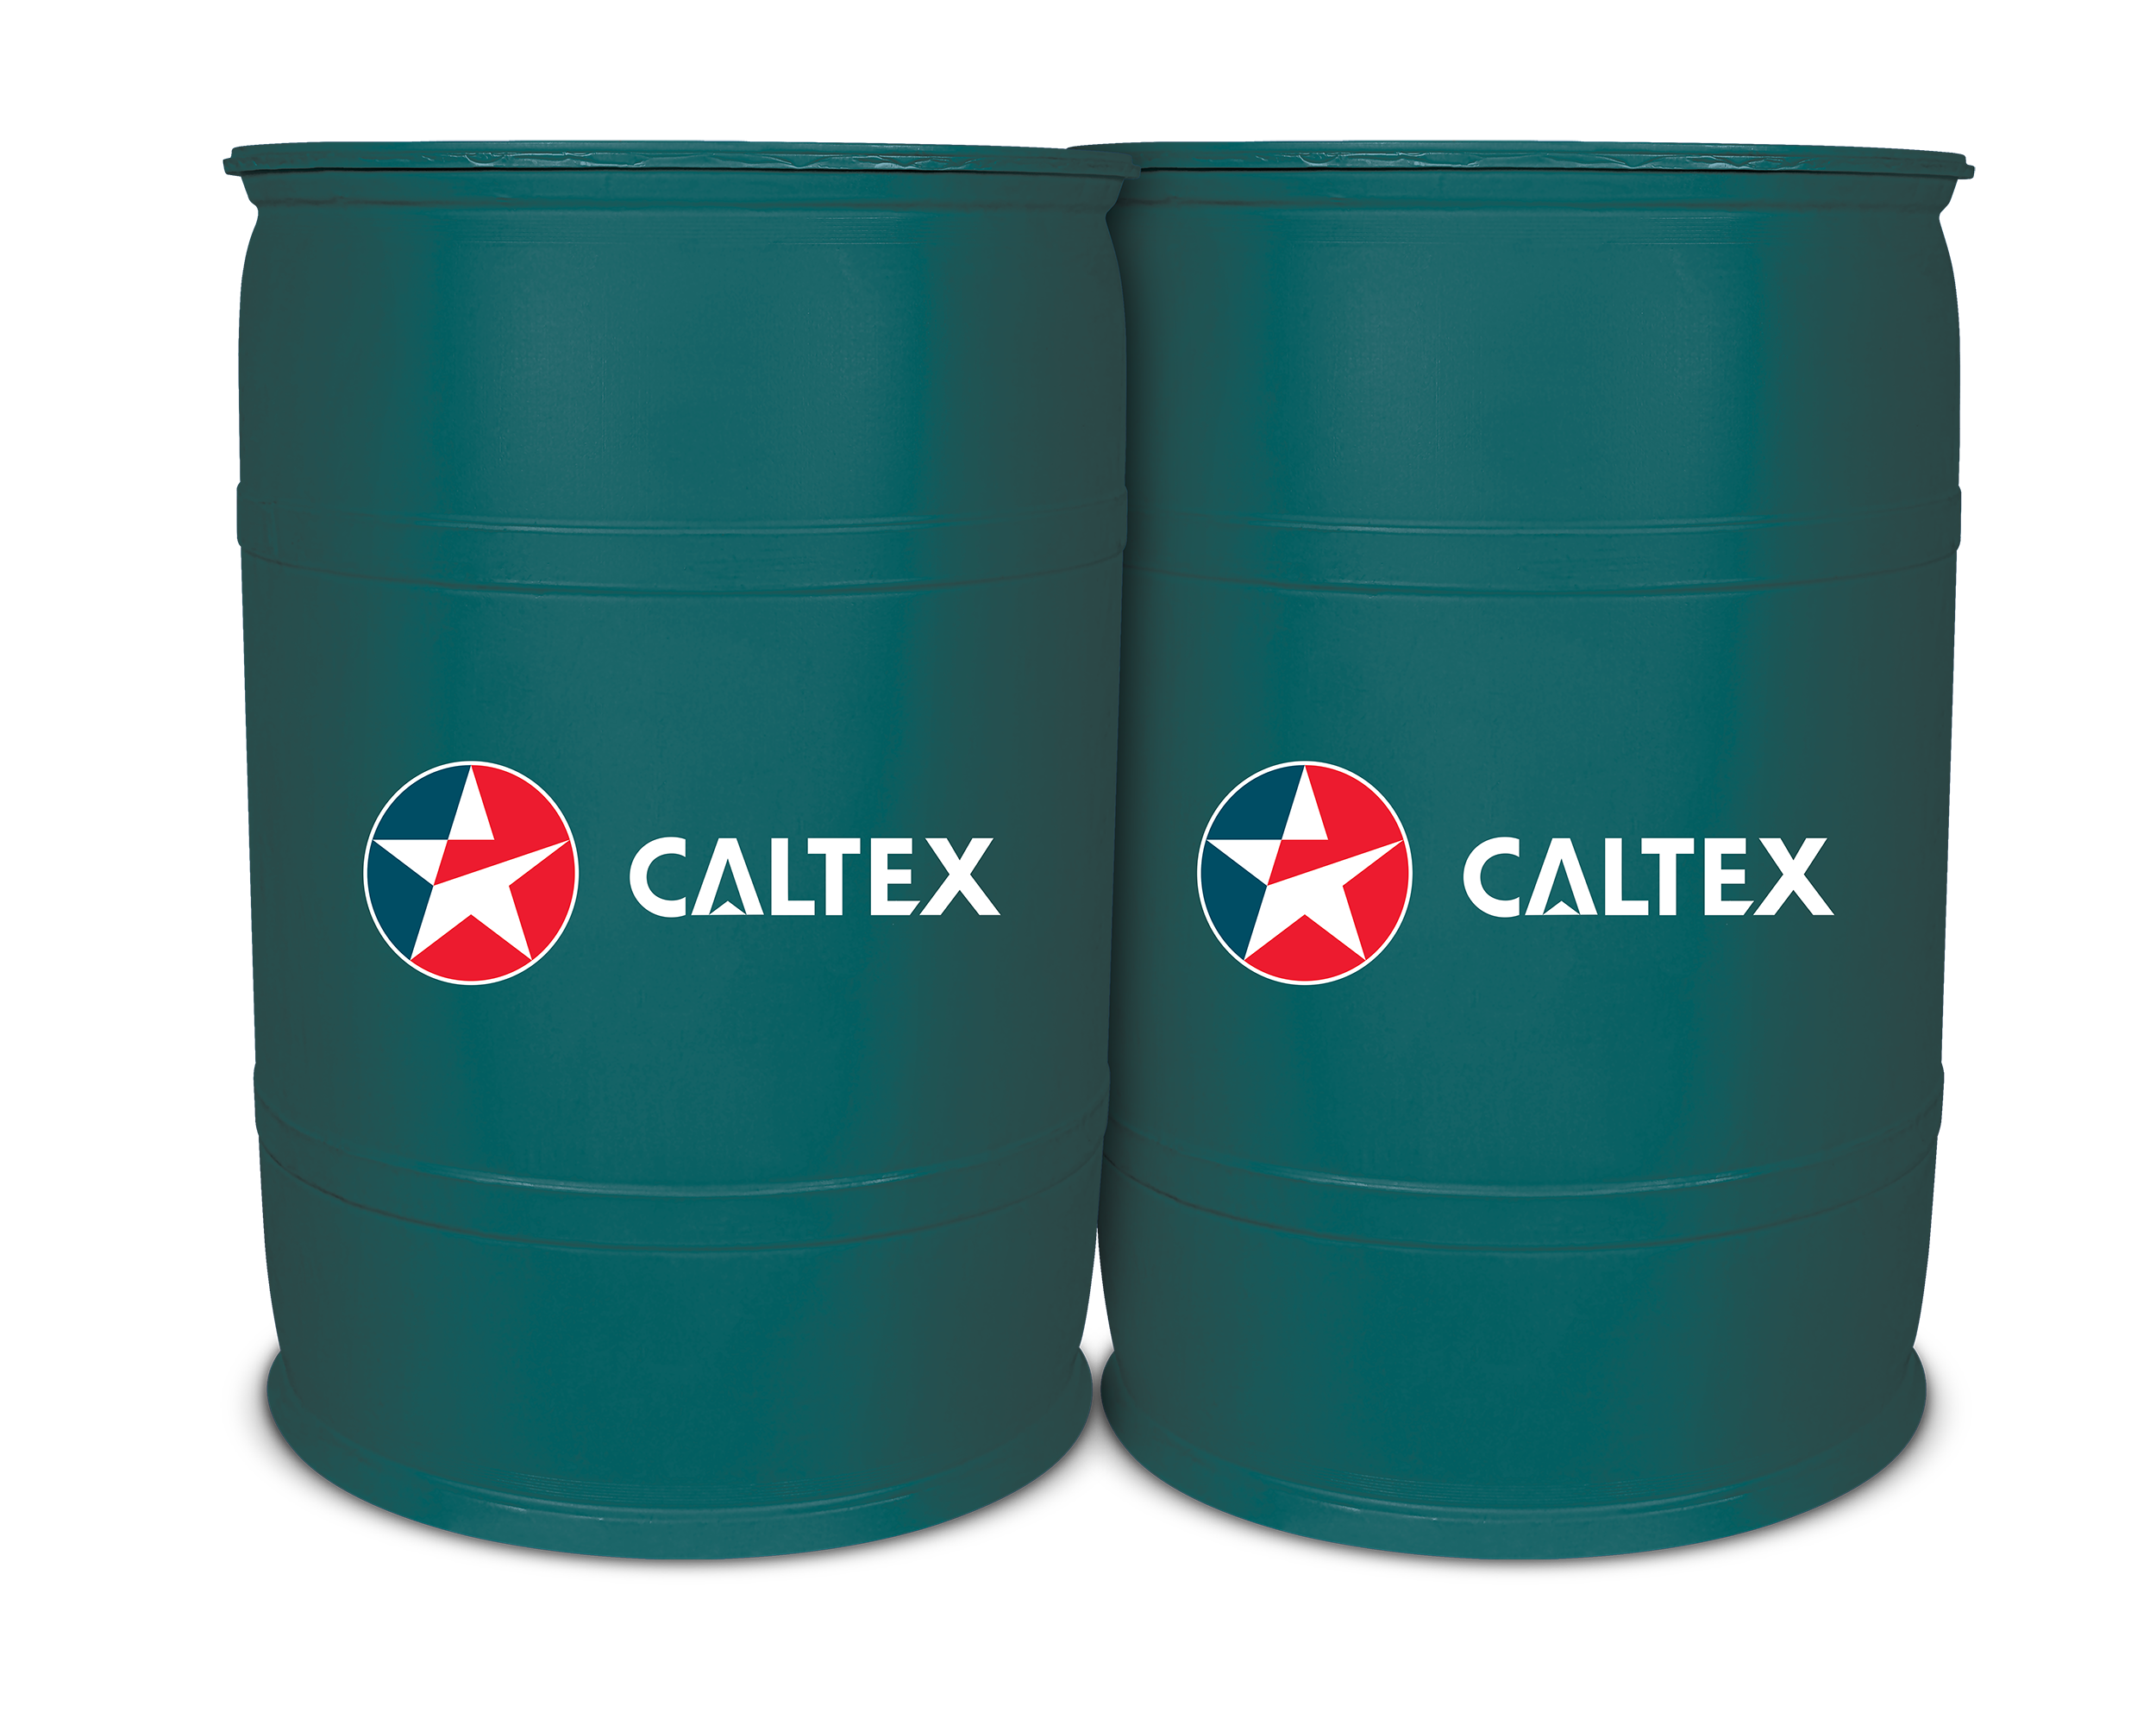 Greases for Businesses | Caltex Pakistan